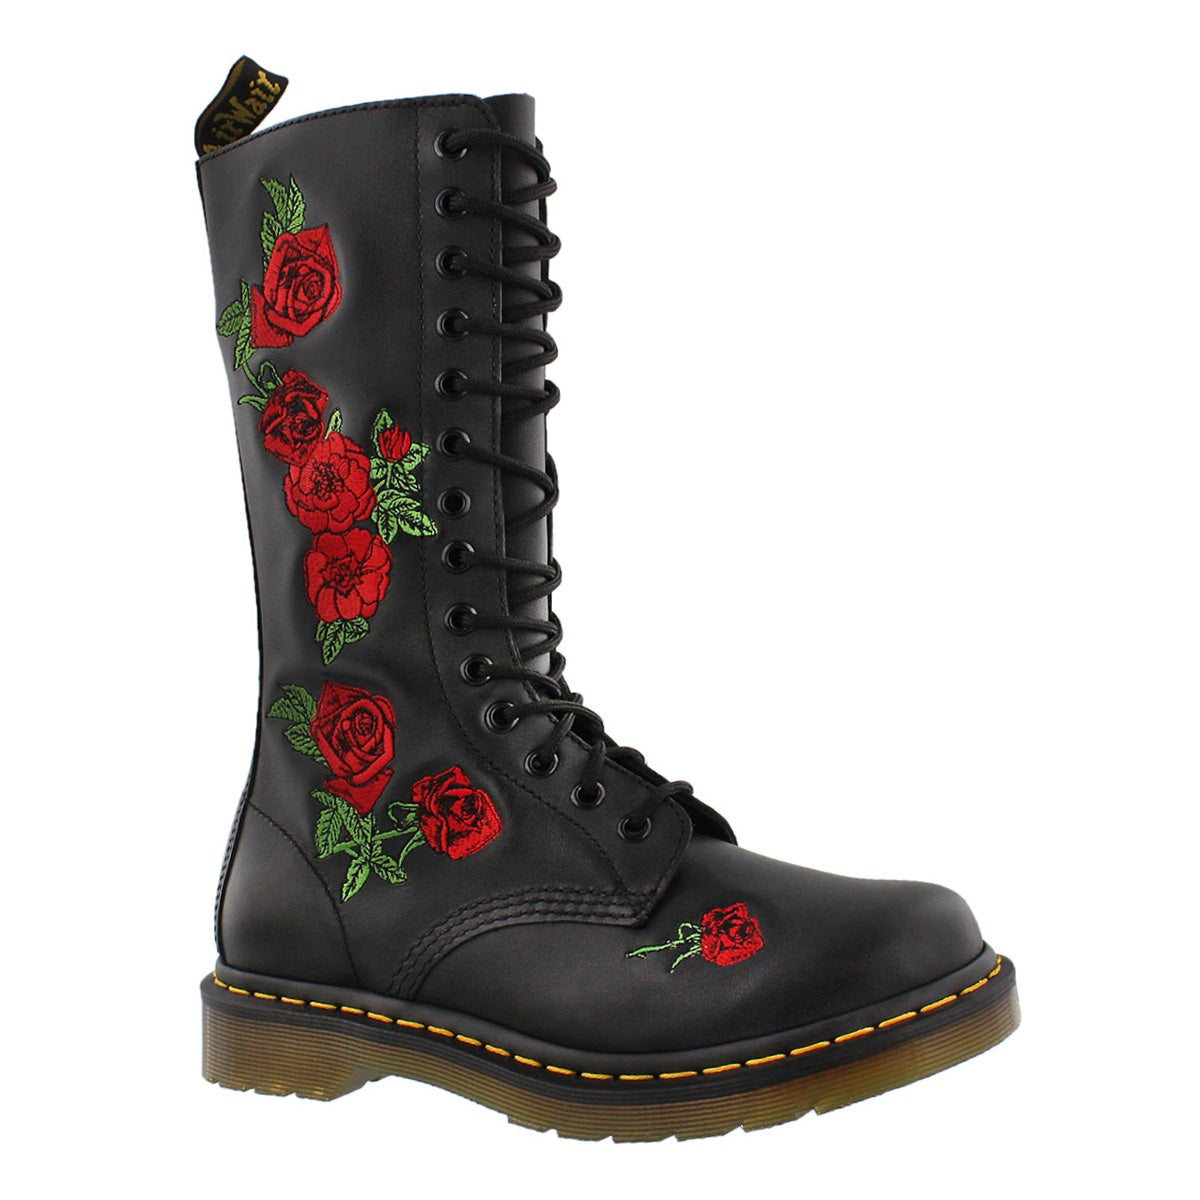 Women's VONDA EMBROIDERY black/red tall boots